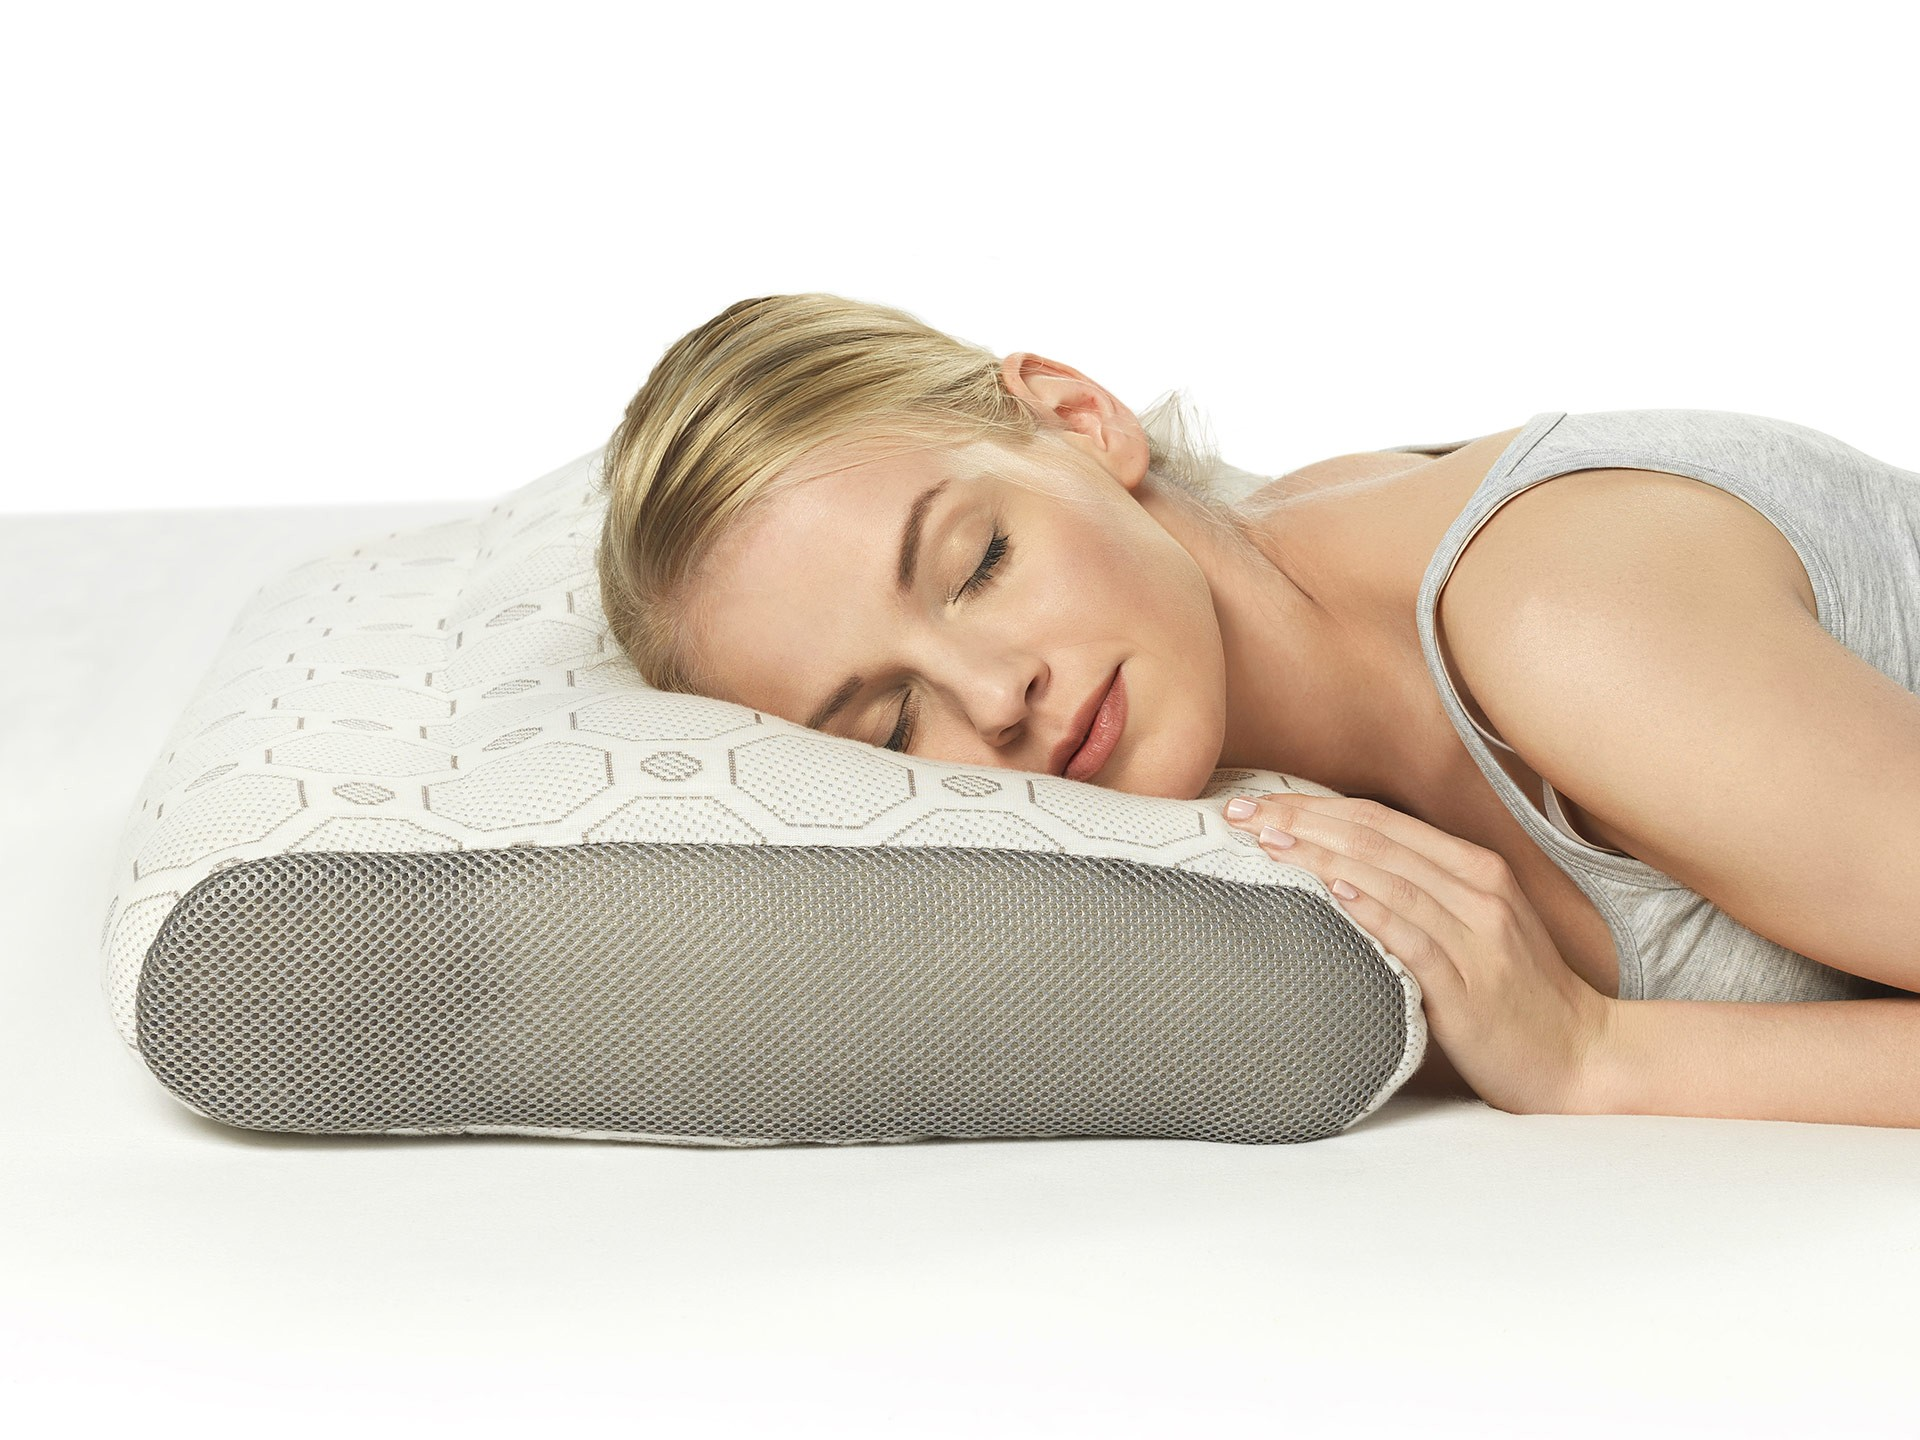 Dormeo Air Smart Duo Pillow has a reversible 2in1 design and ... b87ce5c8df